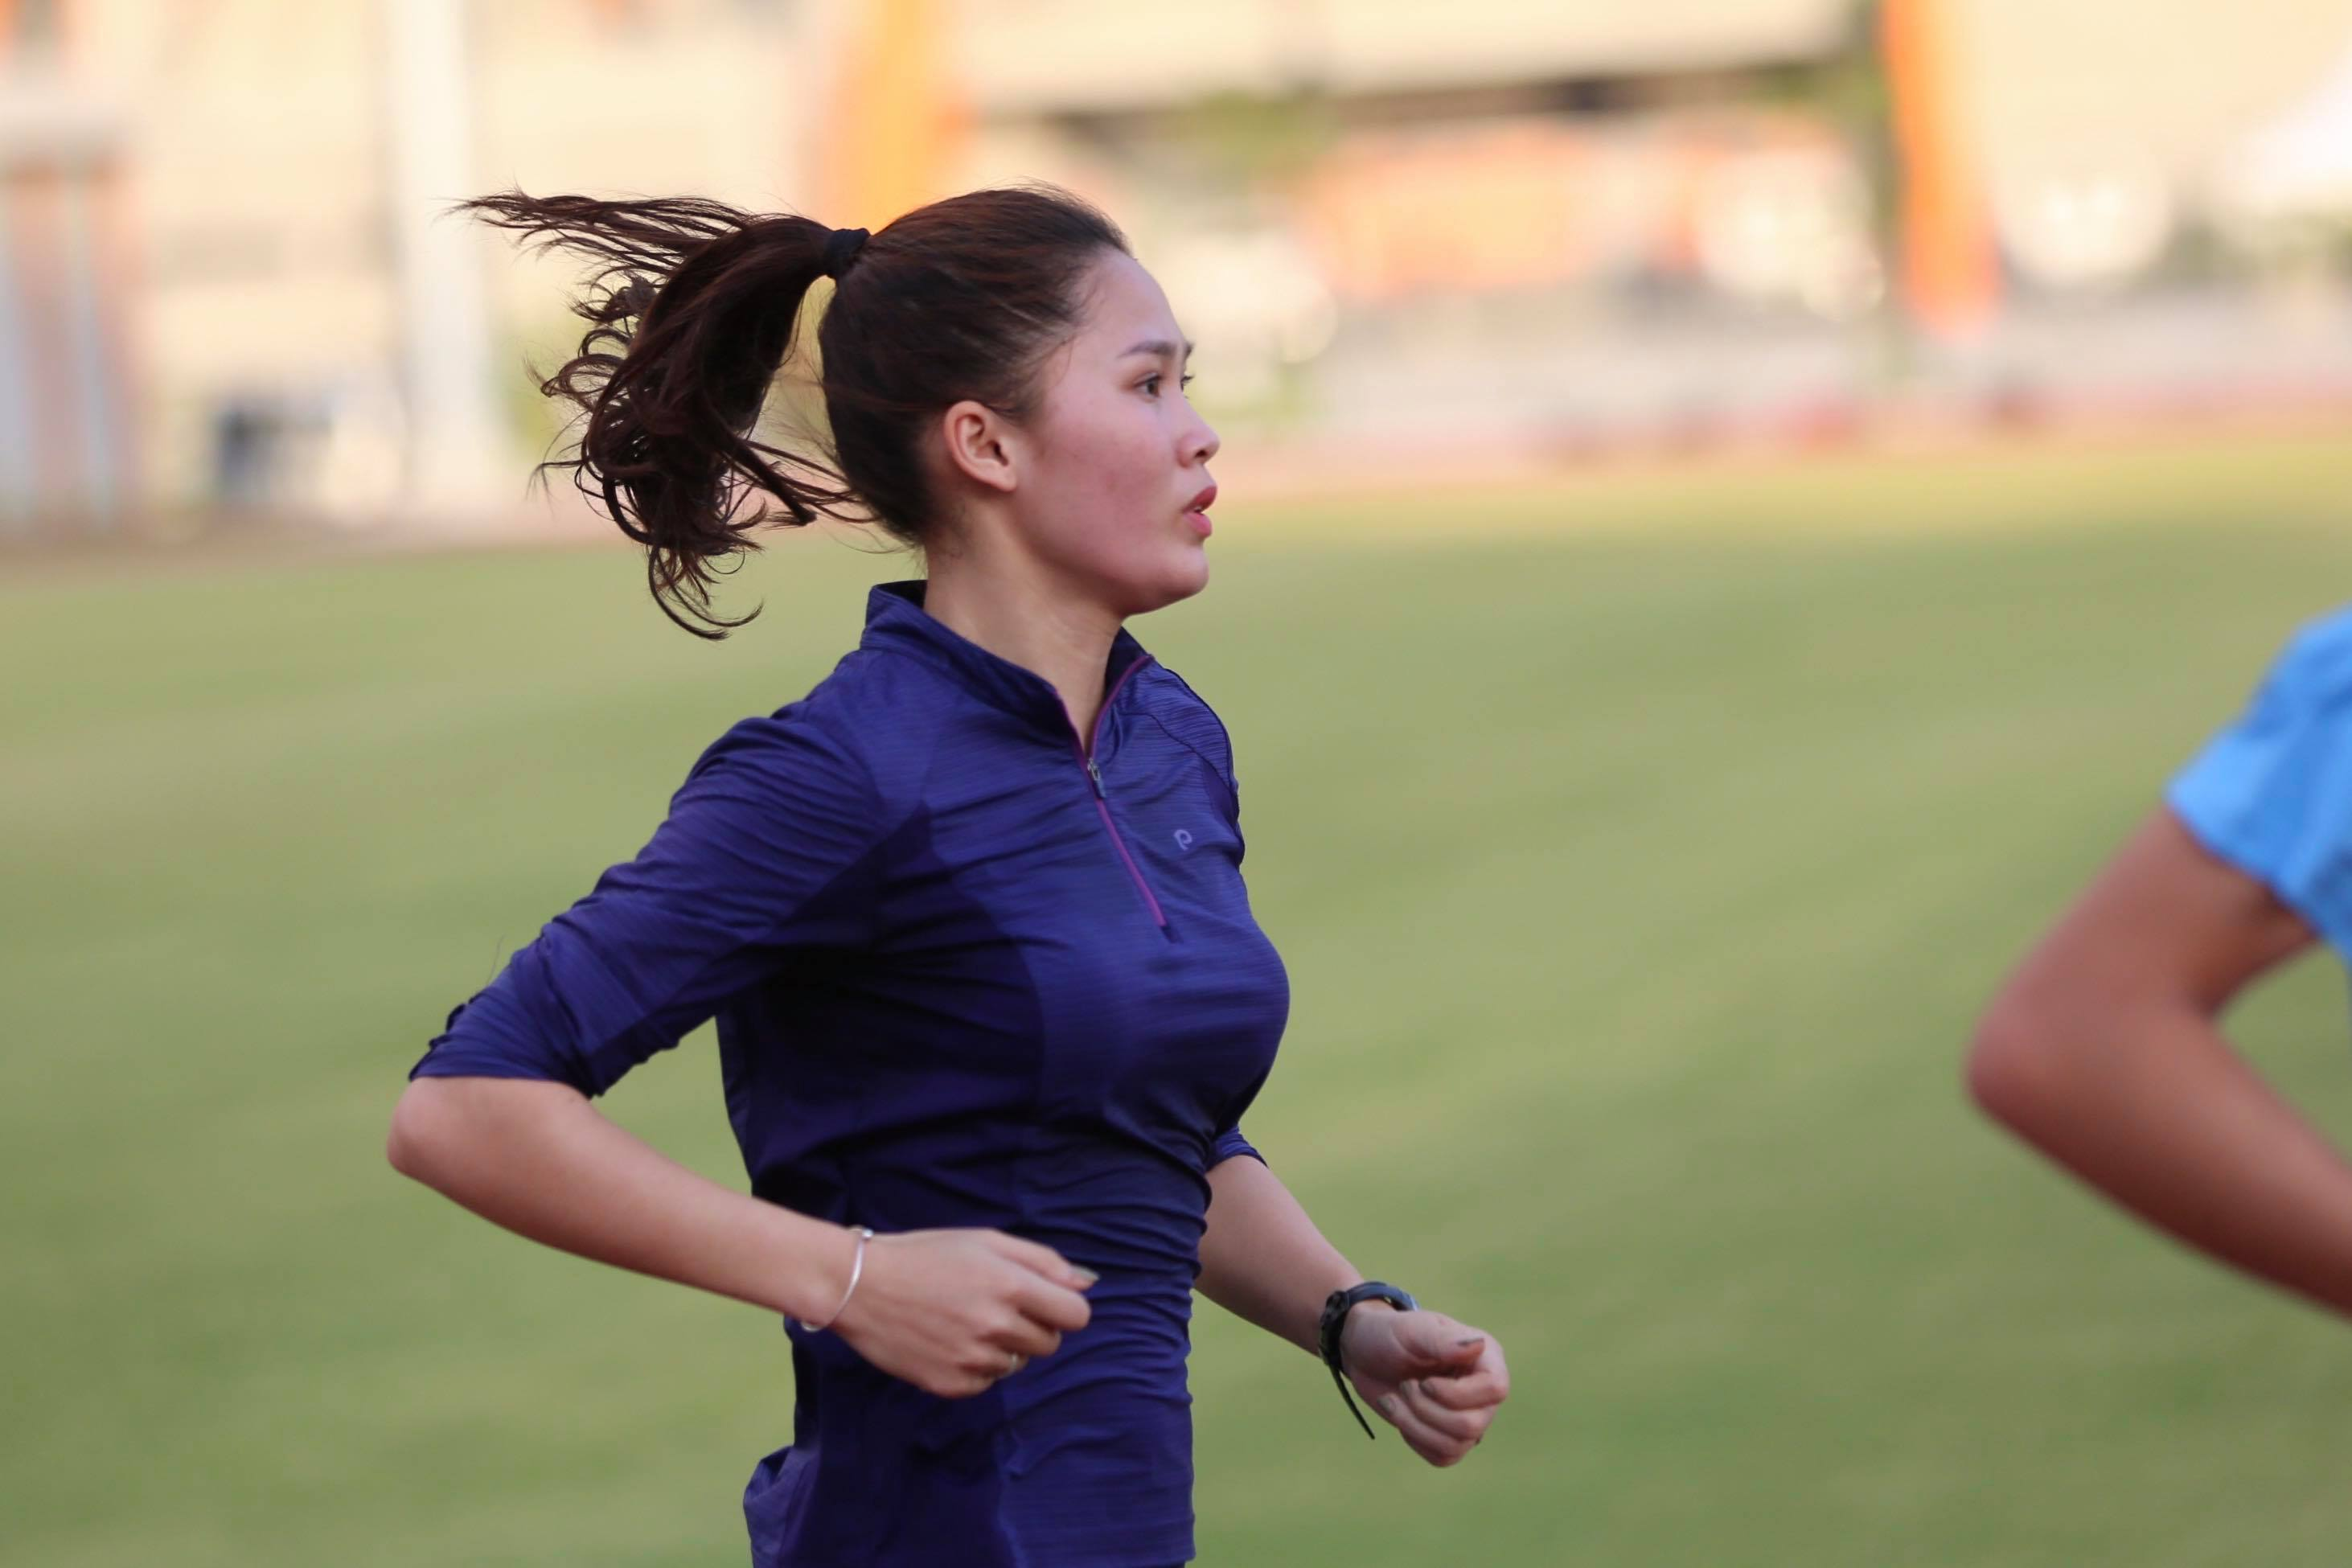 """anh - clip: cac co gai vang dien kinh tap luyen cho """"chien dich sea games"""" hinh anh 9"""